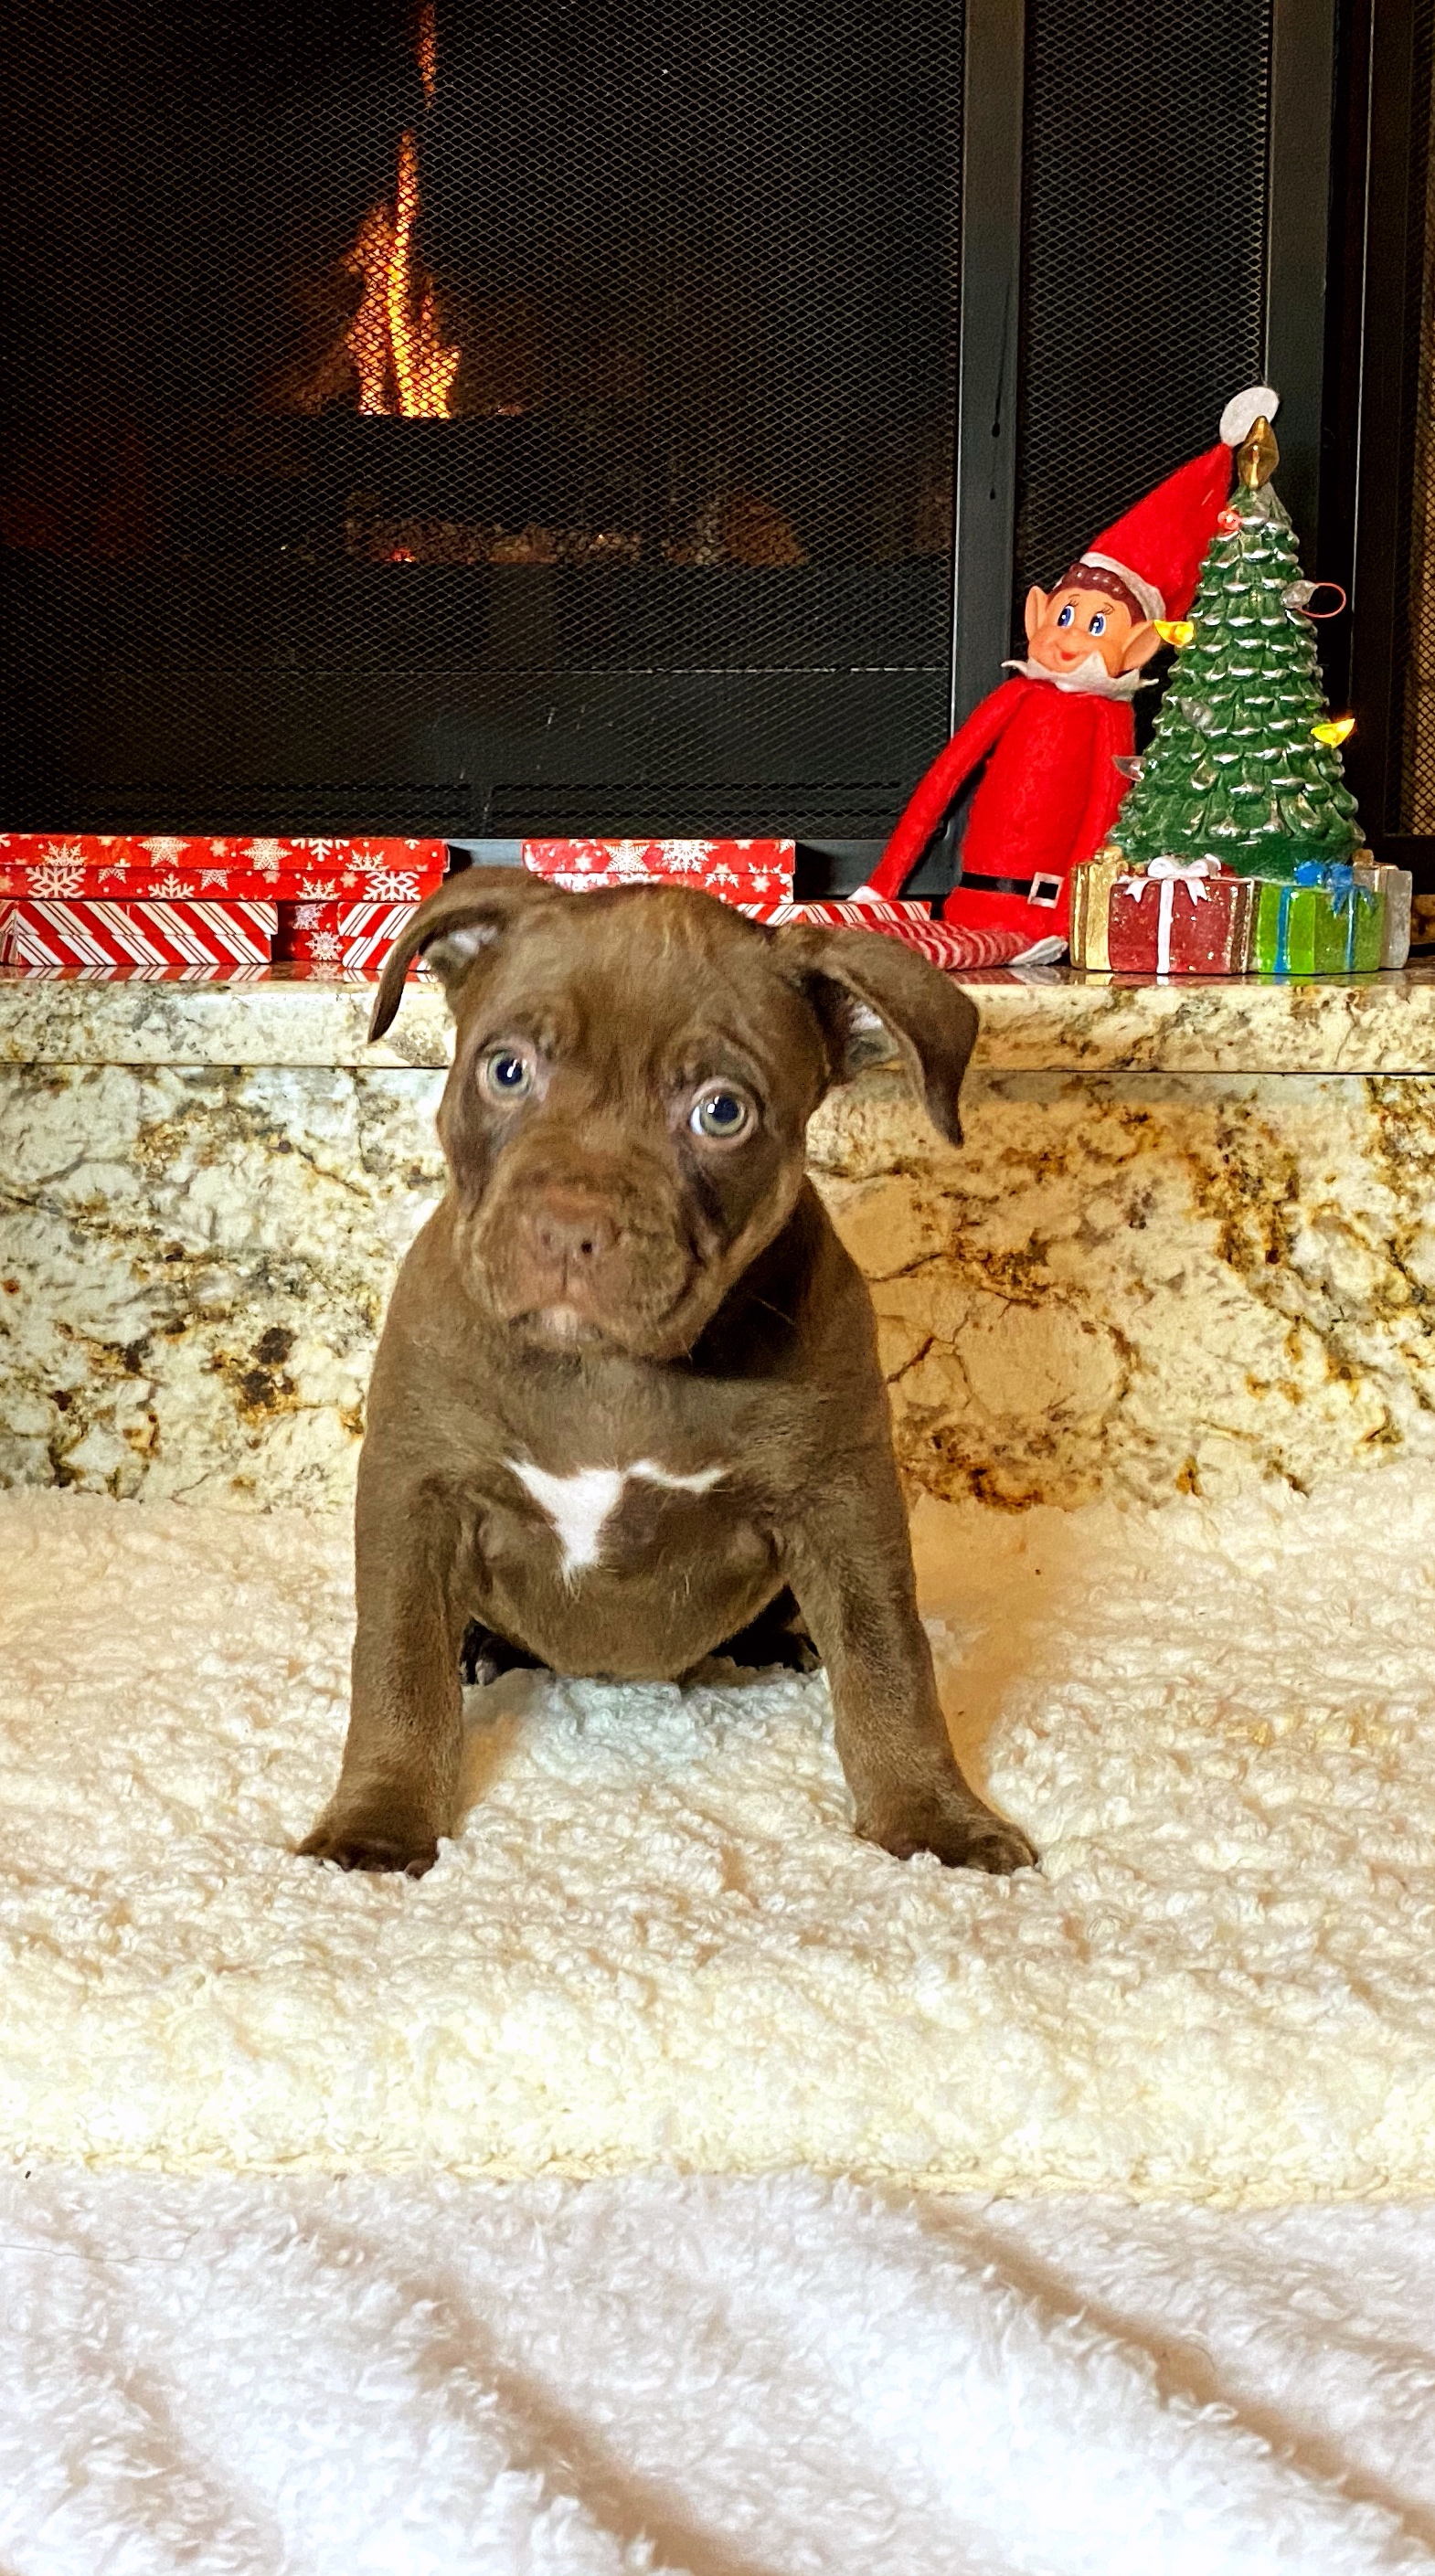 American Bully Puppies Dogs For Sale In Florida United States